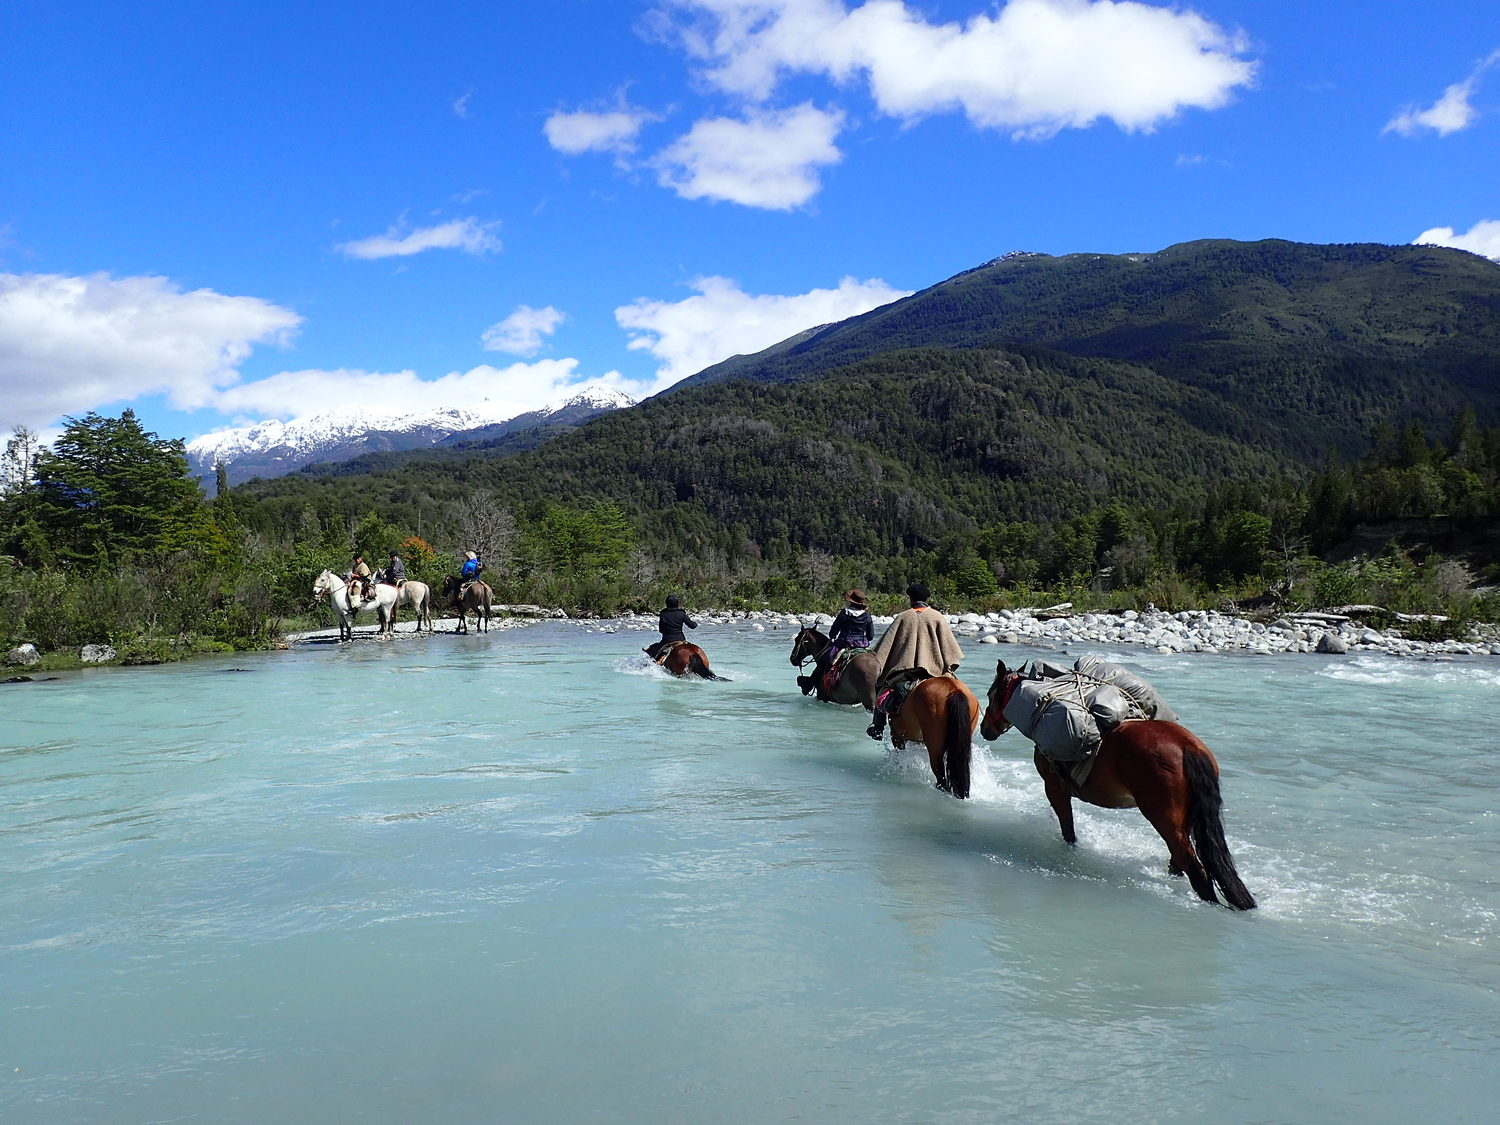 Crossing-the-Correntoso-River-1500